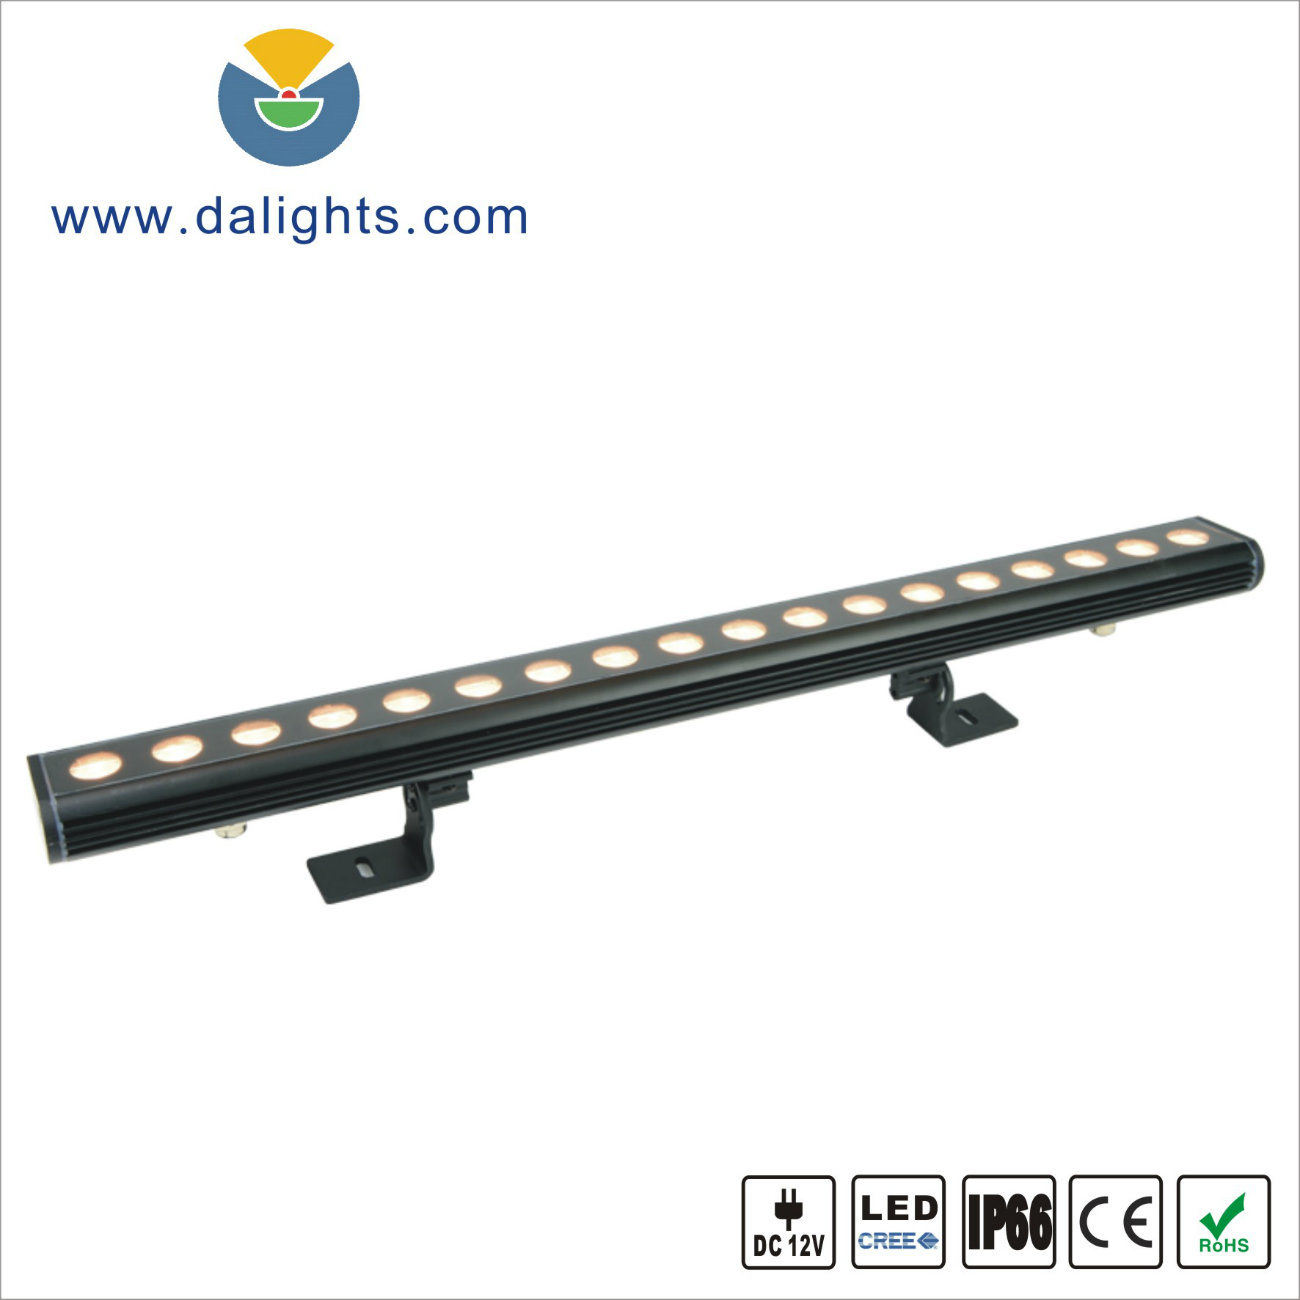 CREE IP66 LED Wall Washer Light H6035